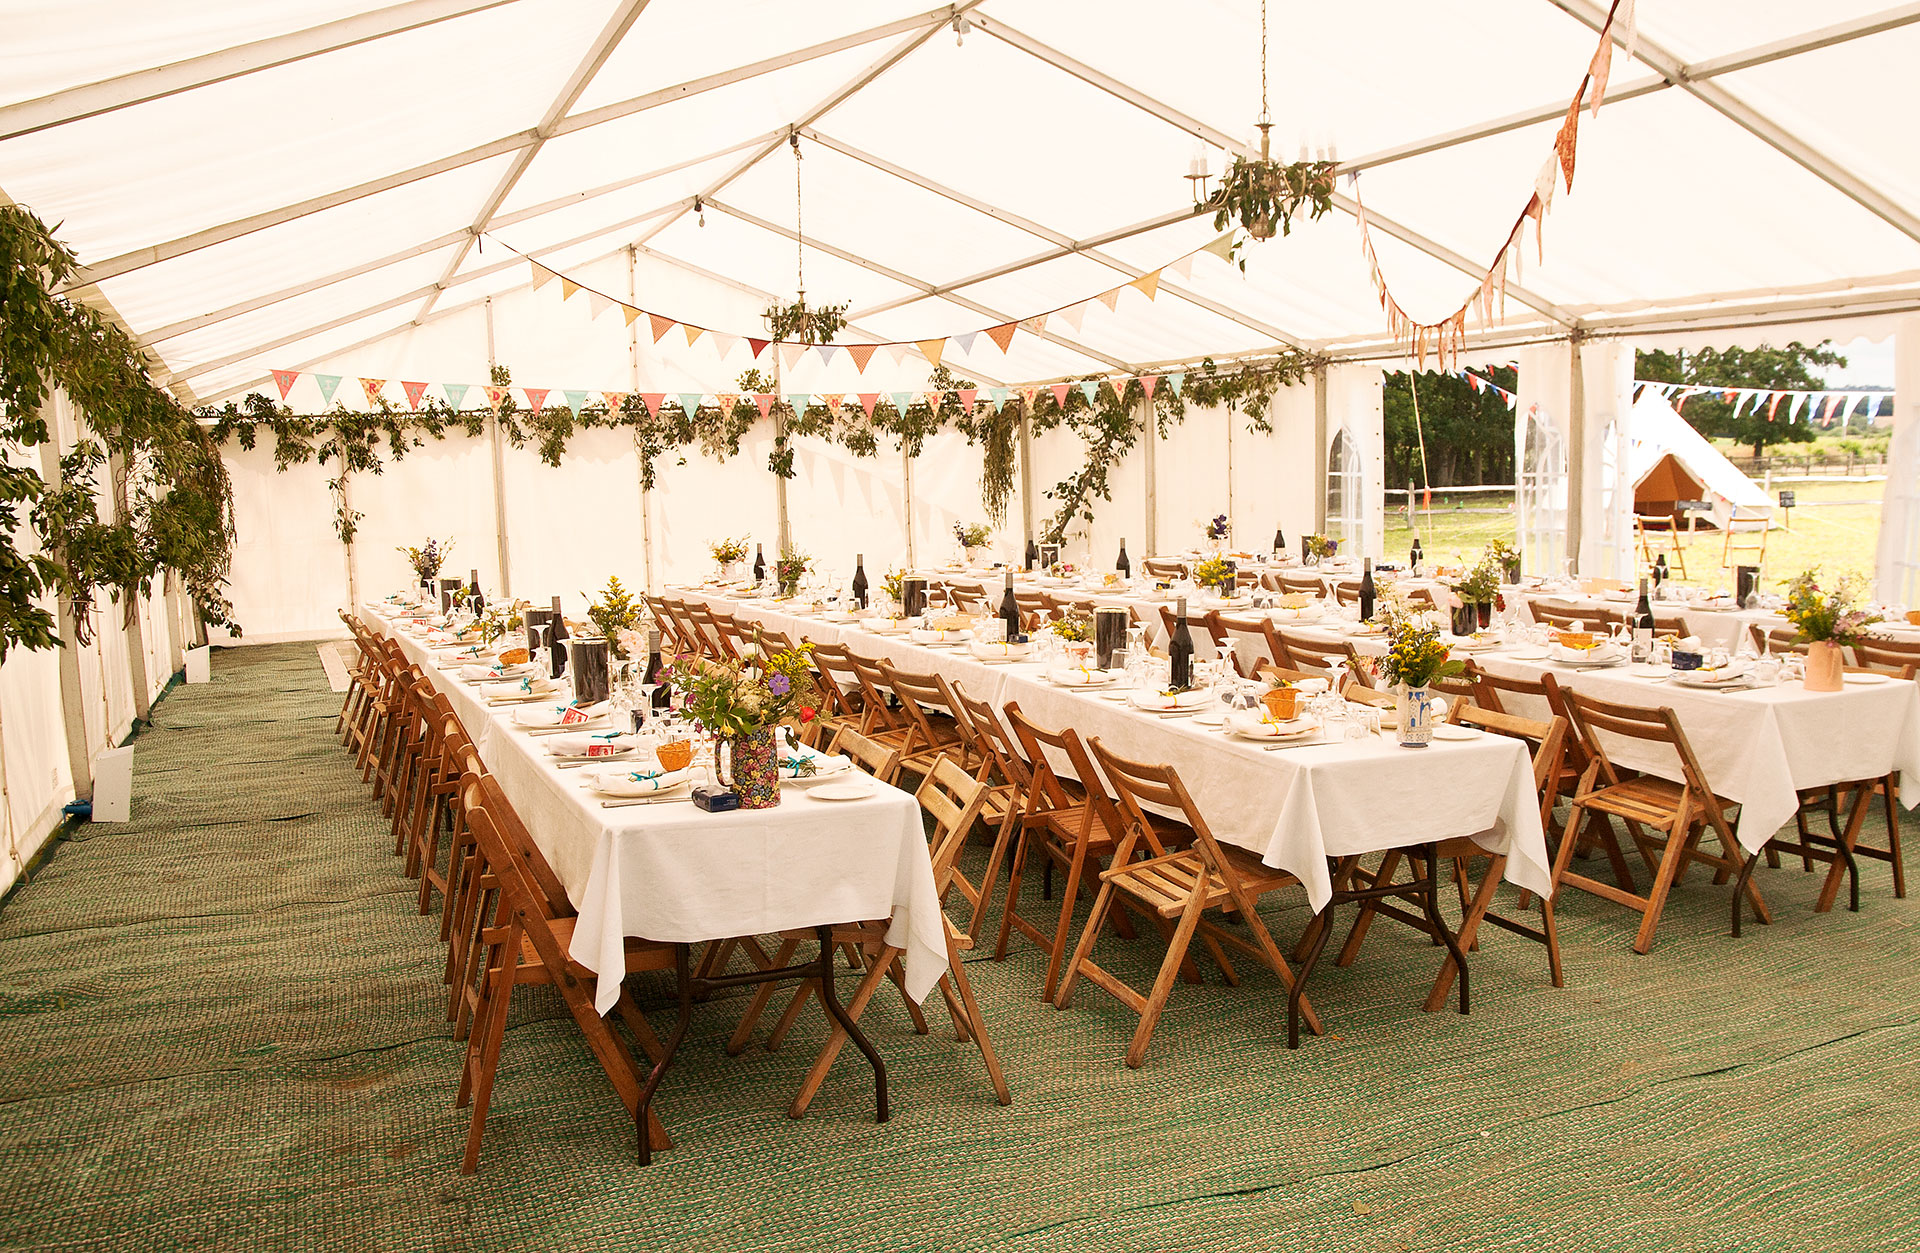 Clearspan Tent with Green Carpet